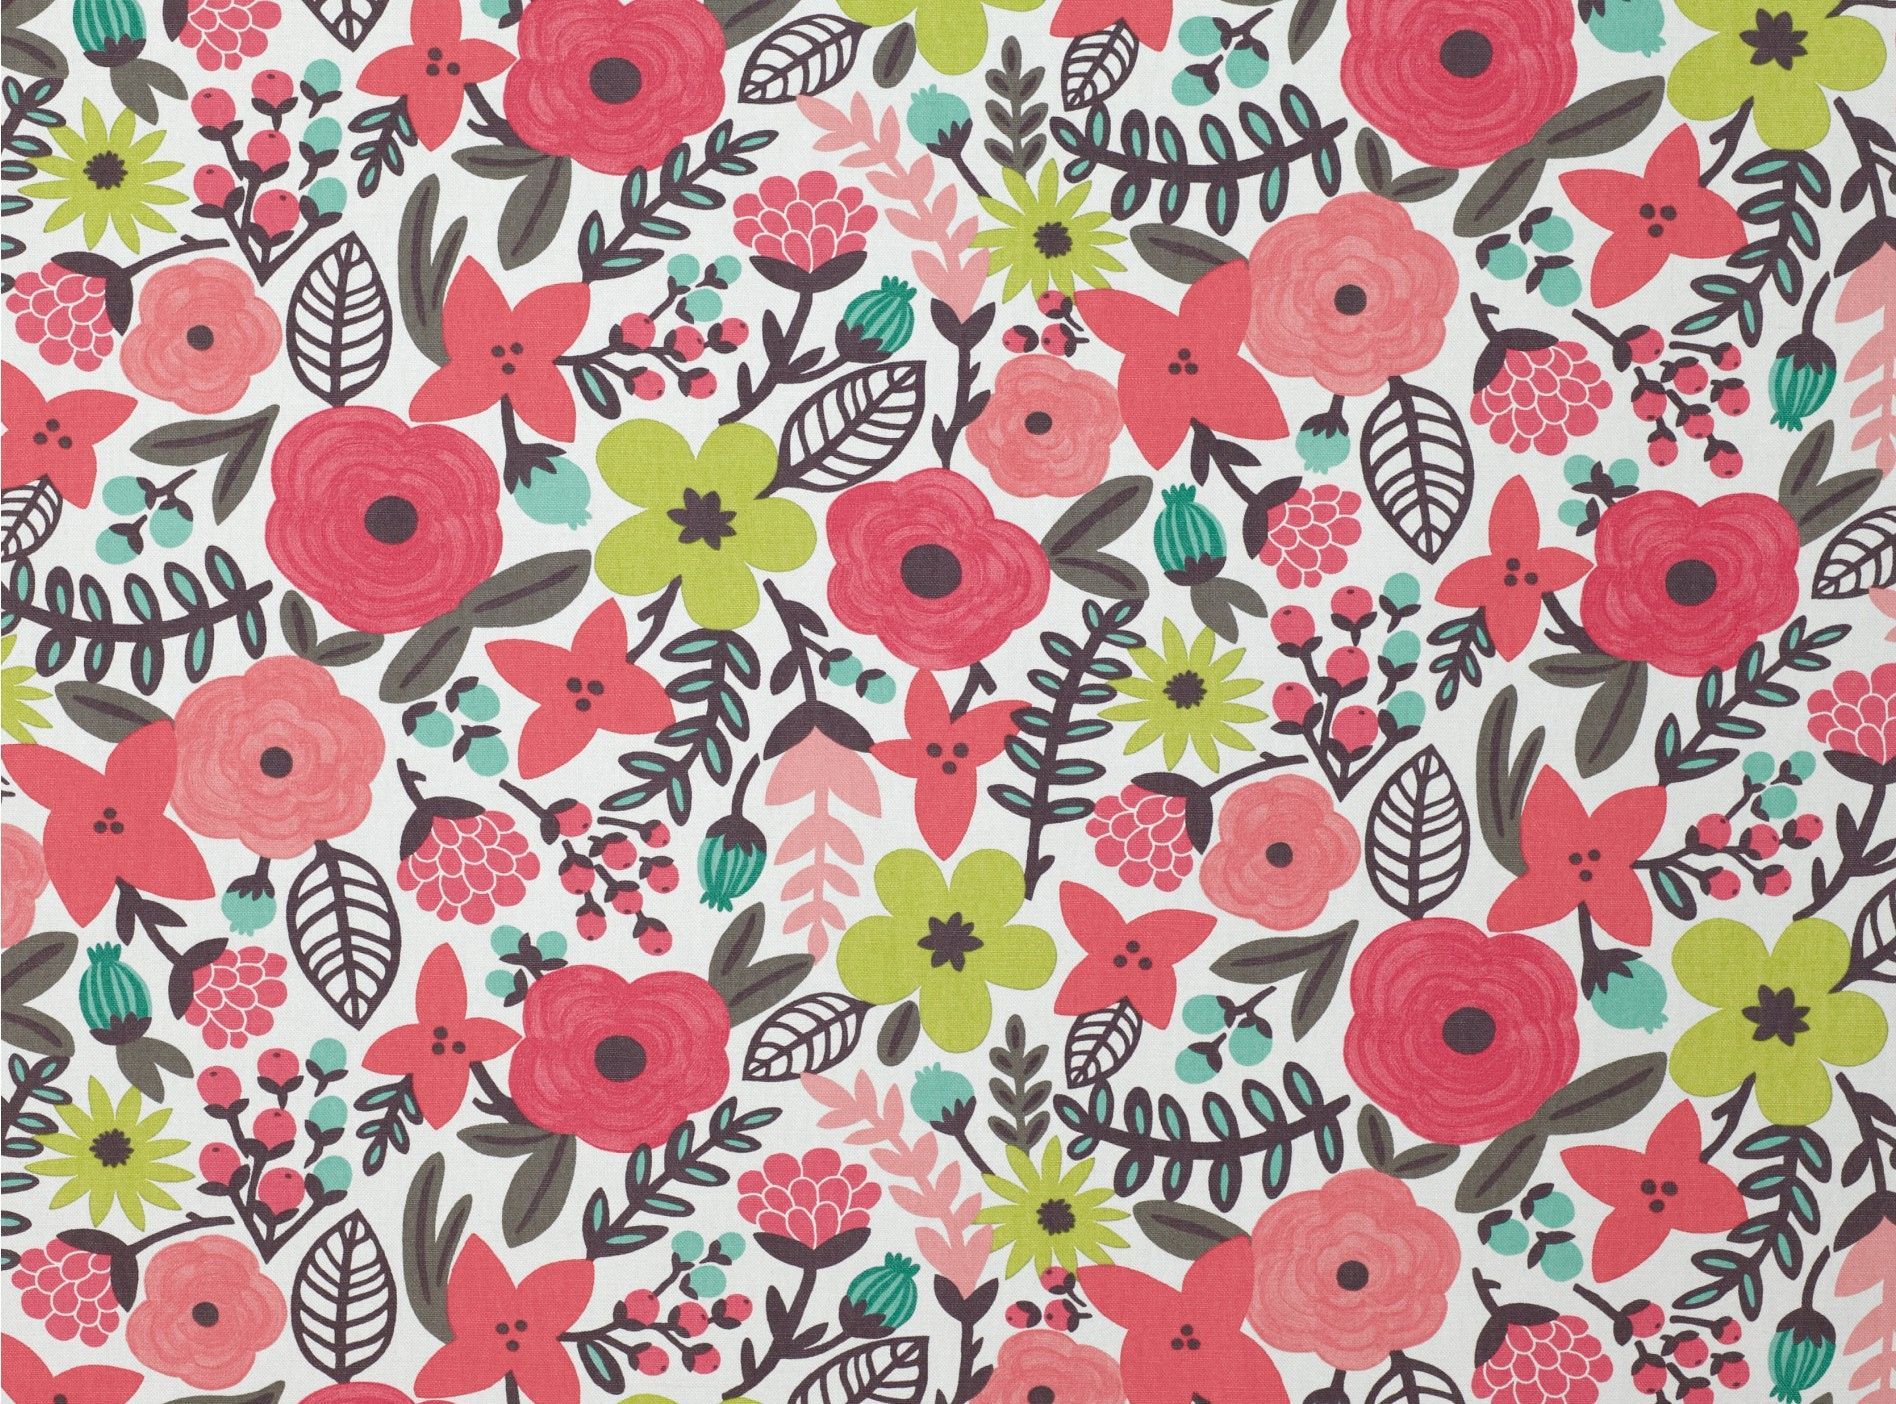 Sarawak Tutti-Frutti upholstery fabric: Rifle Paper Co. for Villa Nova >> So gorgeous!